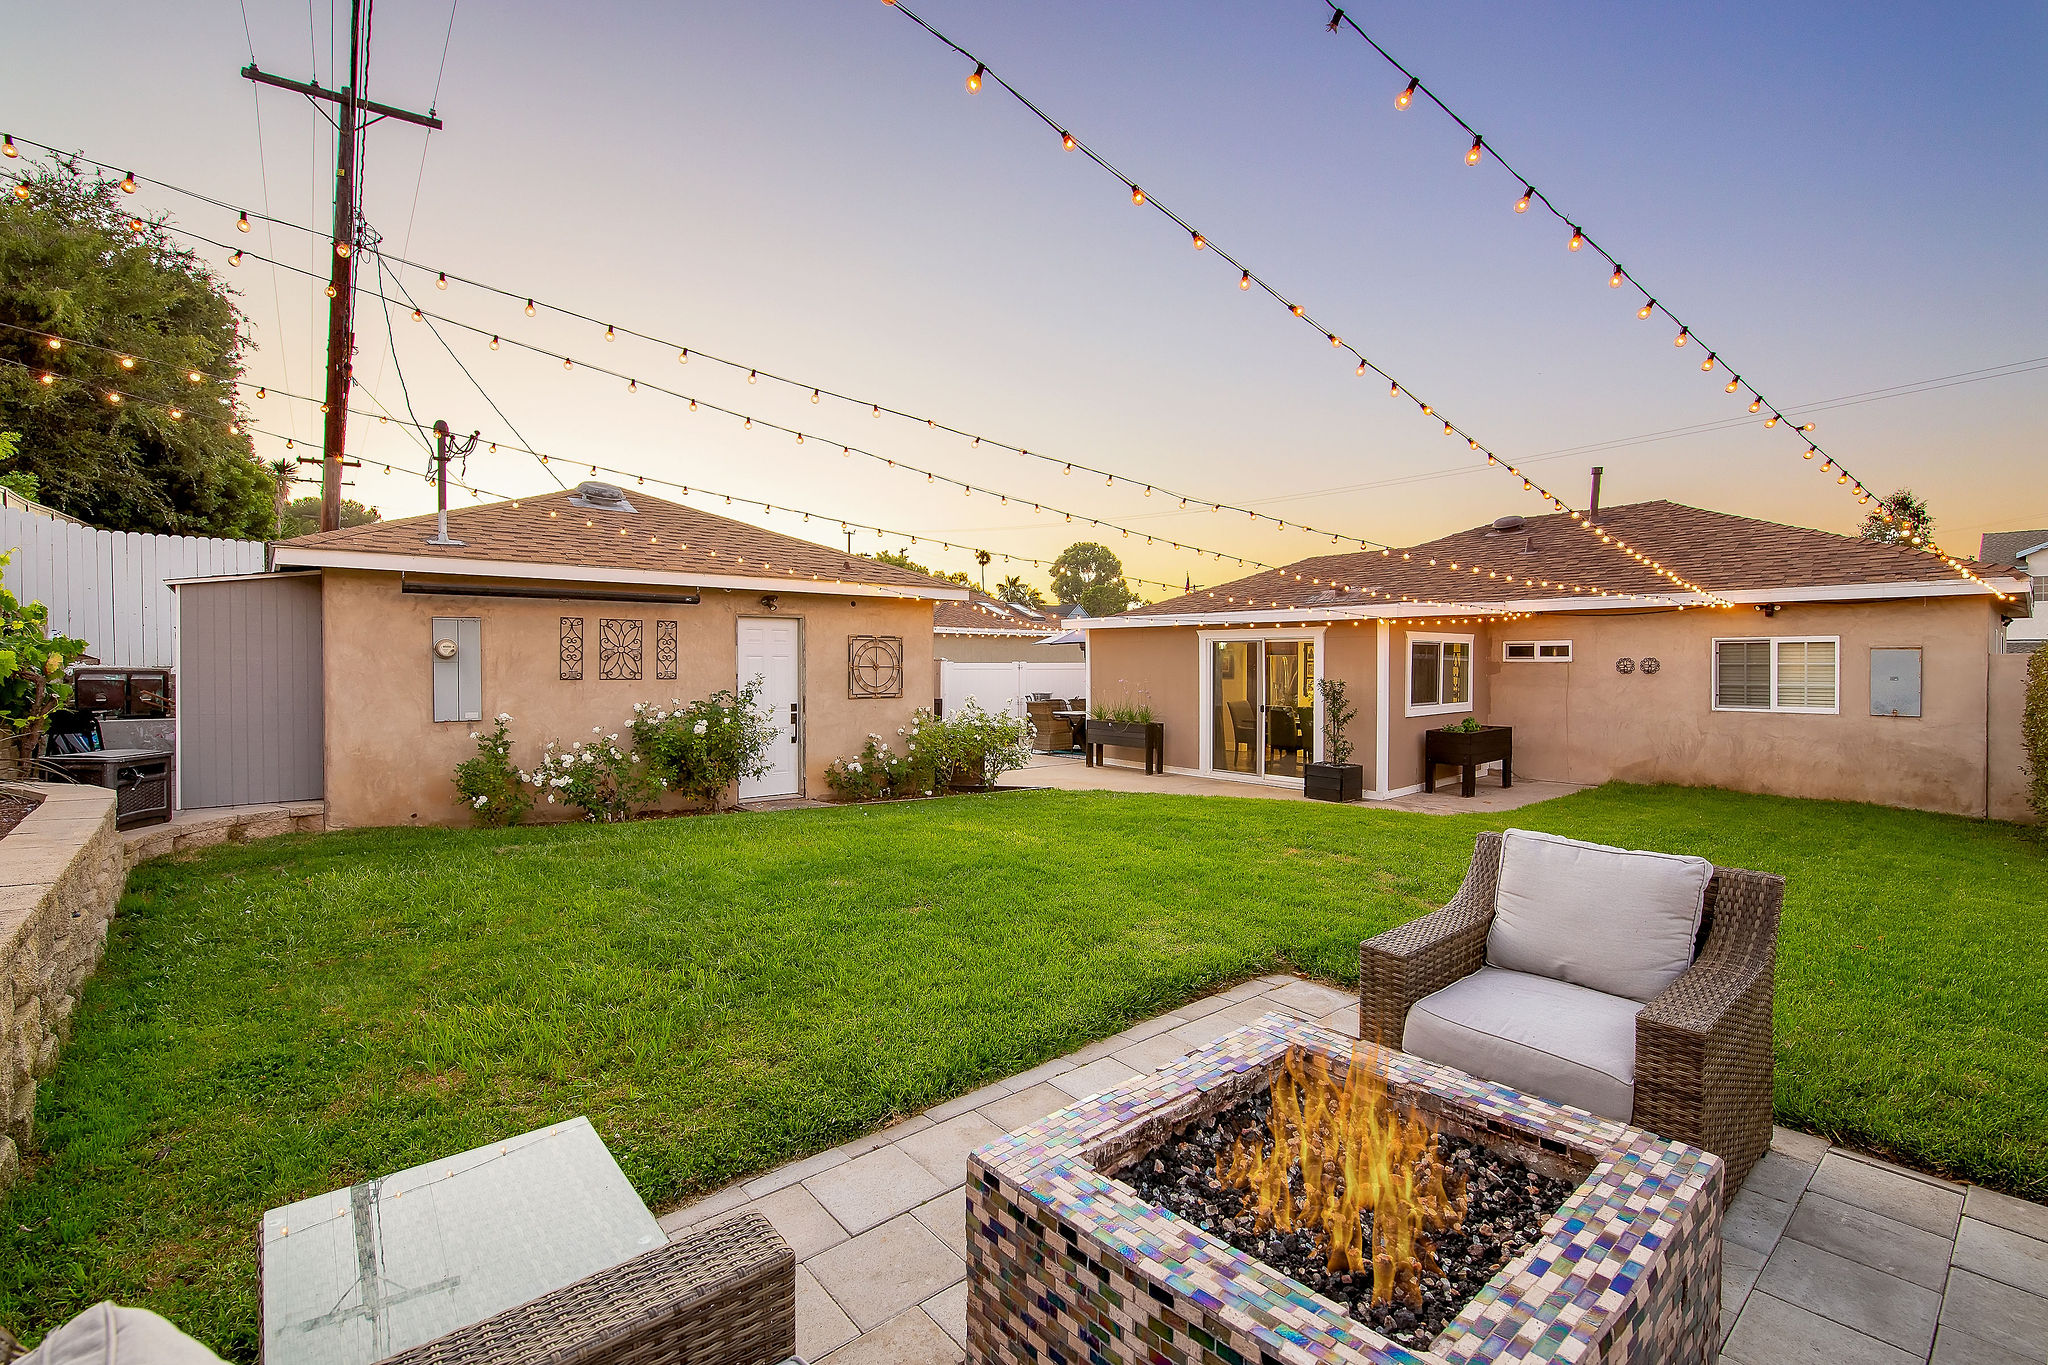 New Listing in Seaside/South Torrance – Remodeled, One Level, Smart Home!